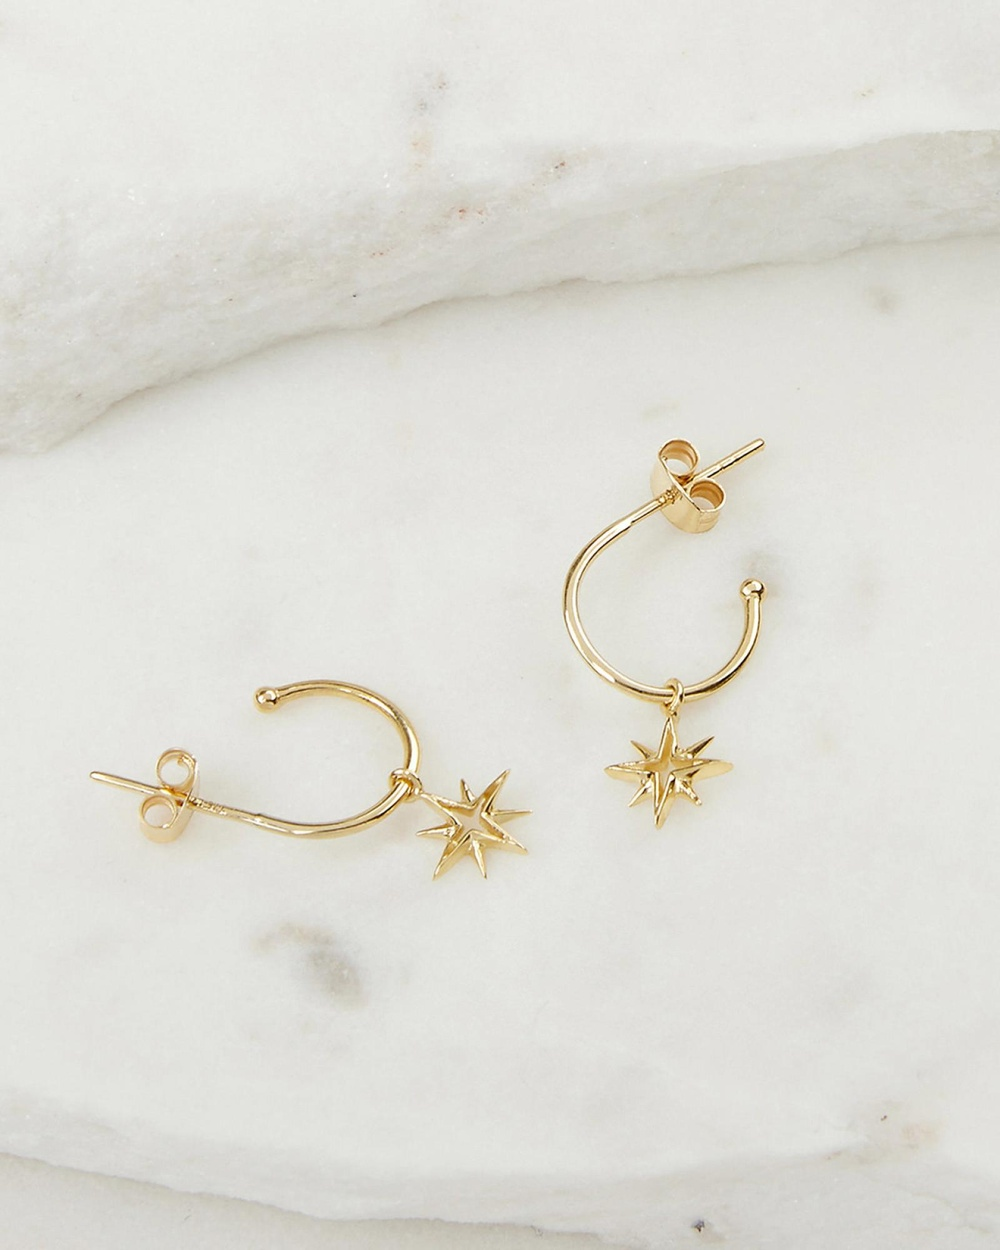 Luna Rae Solid Gold My True North Earrings Jewellery Gold